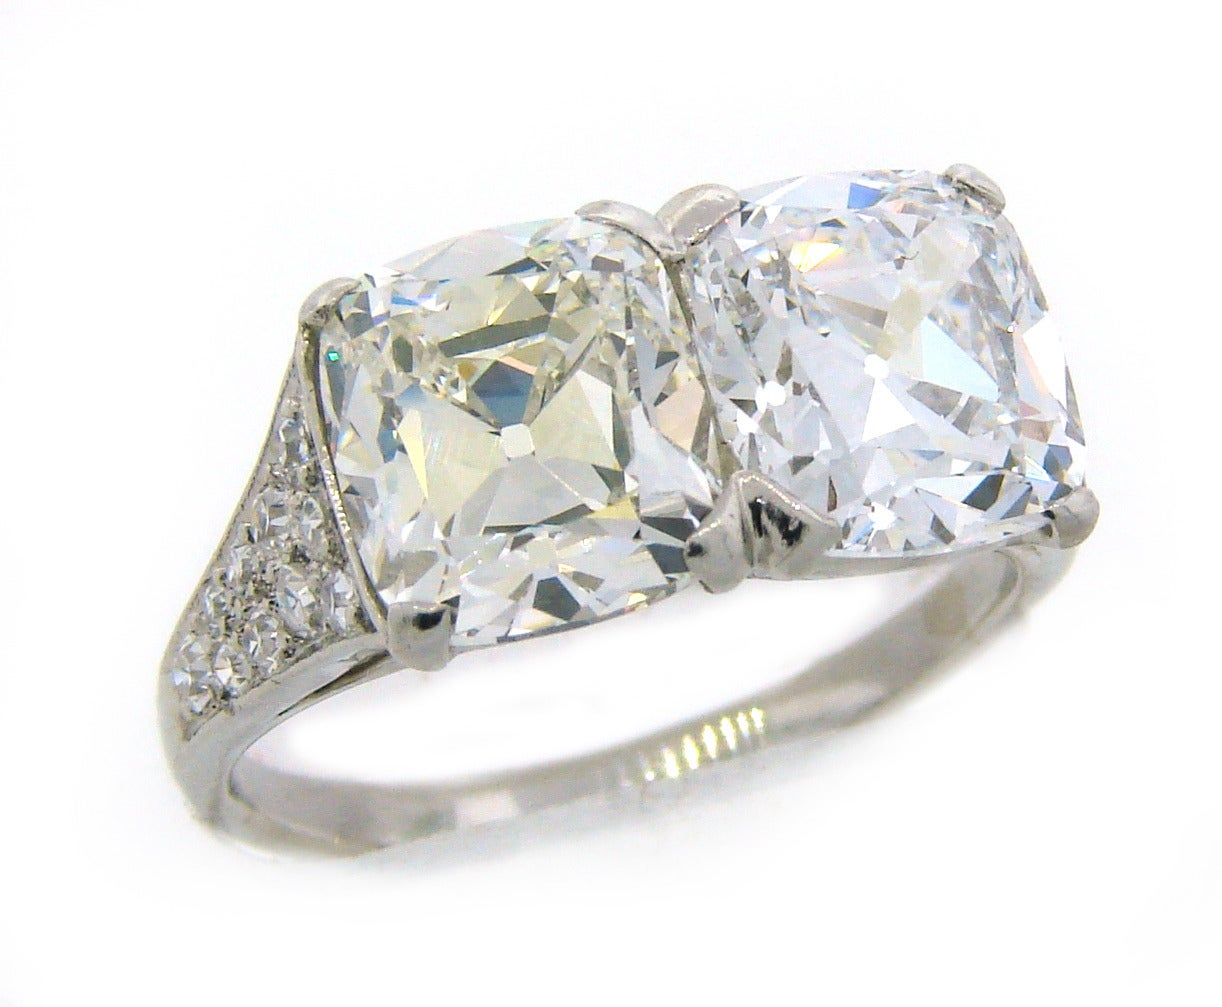 Magnificent Art Deco two-stone ring created by Cartier in the 1920s. it features two cushion cut diamonds - one is 2.71 carat (I, VVS2) and the other one is 2.52 carat (D, IF). The diamonds are accompanied with GIA certificates (please see pictures